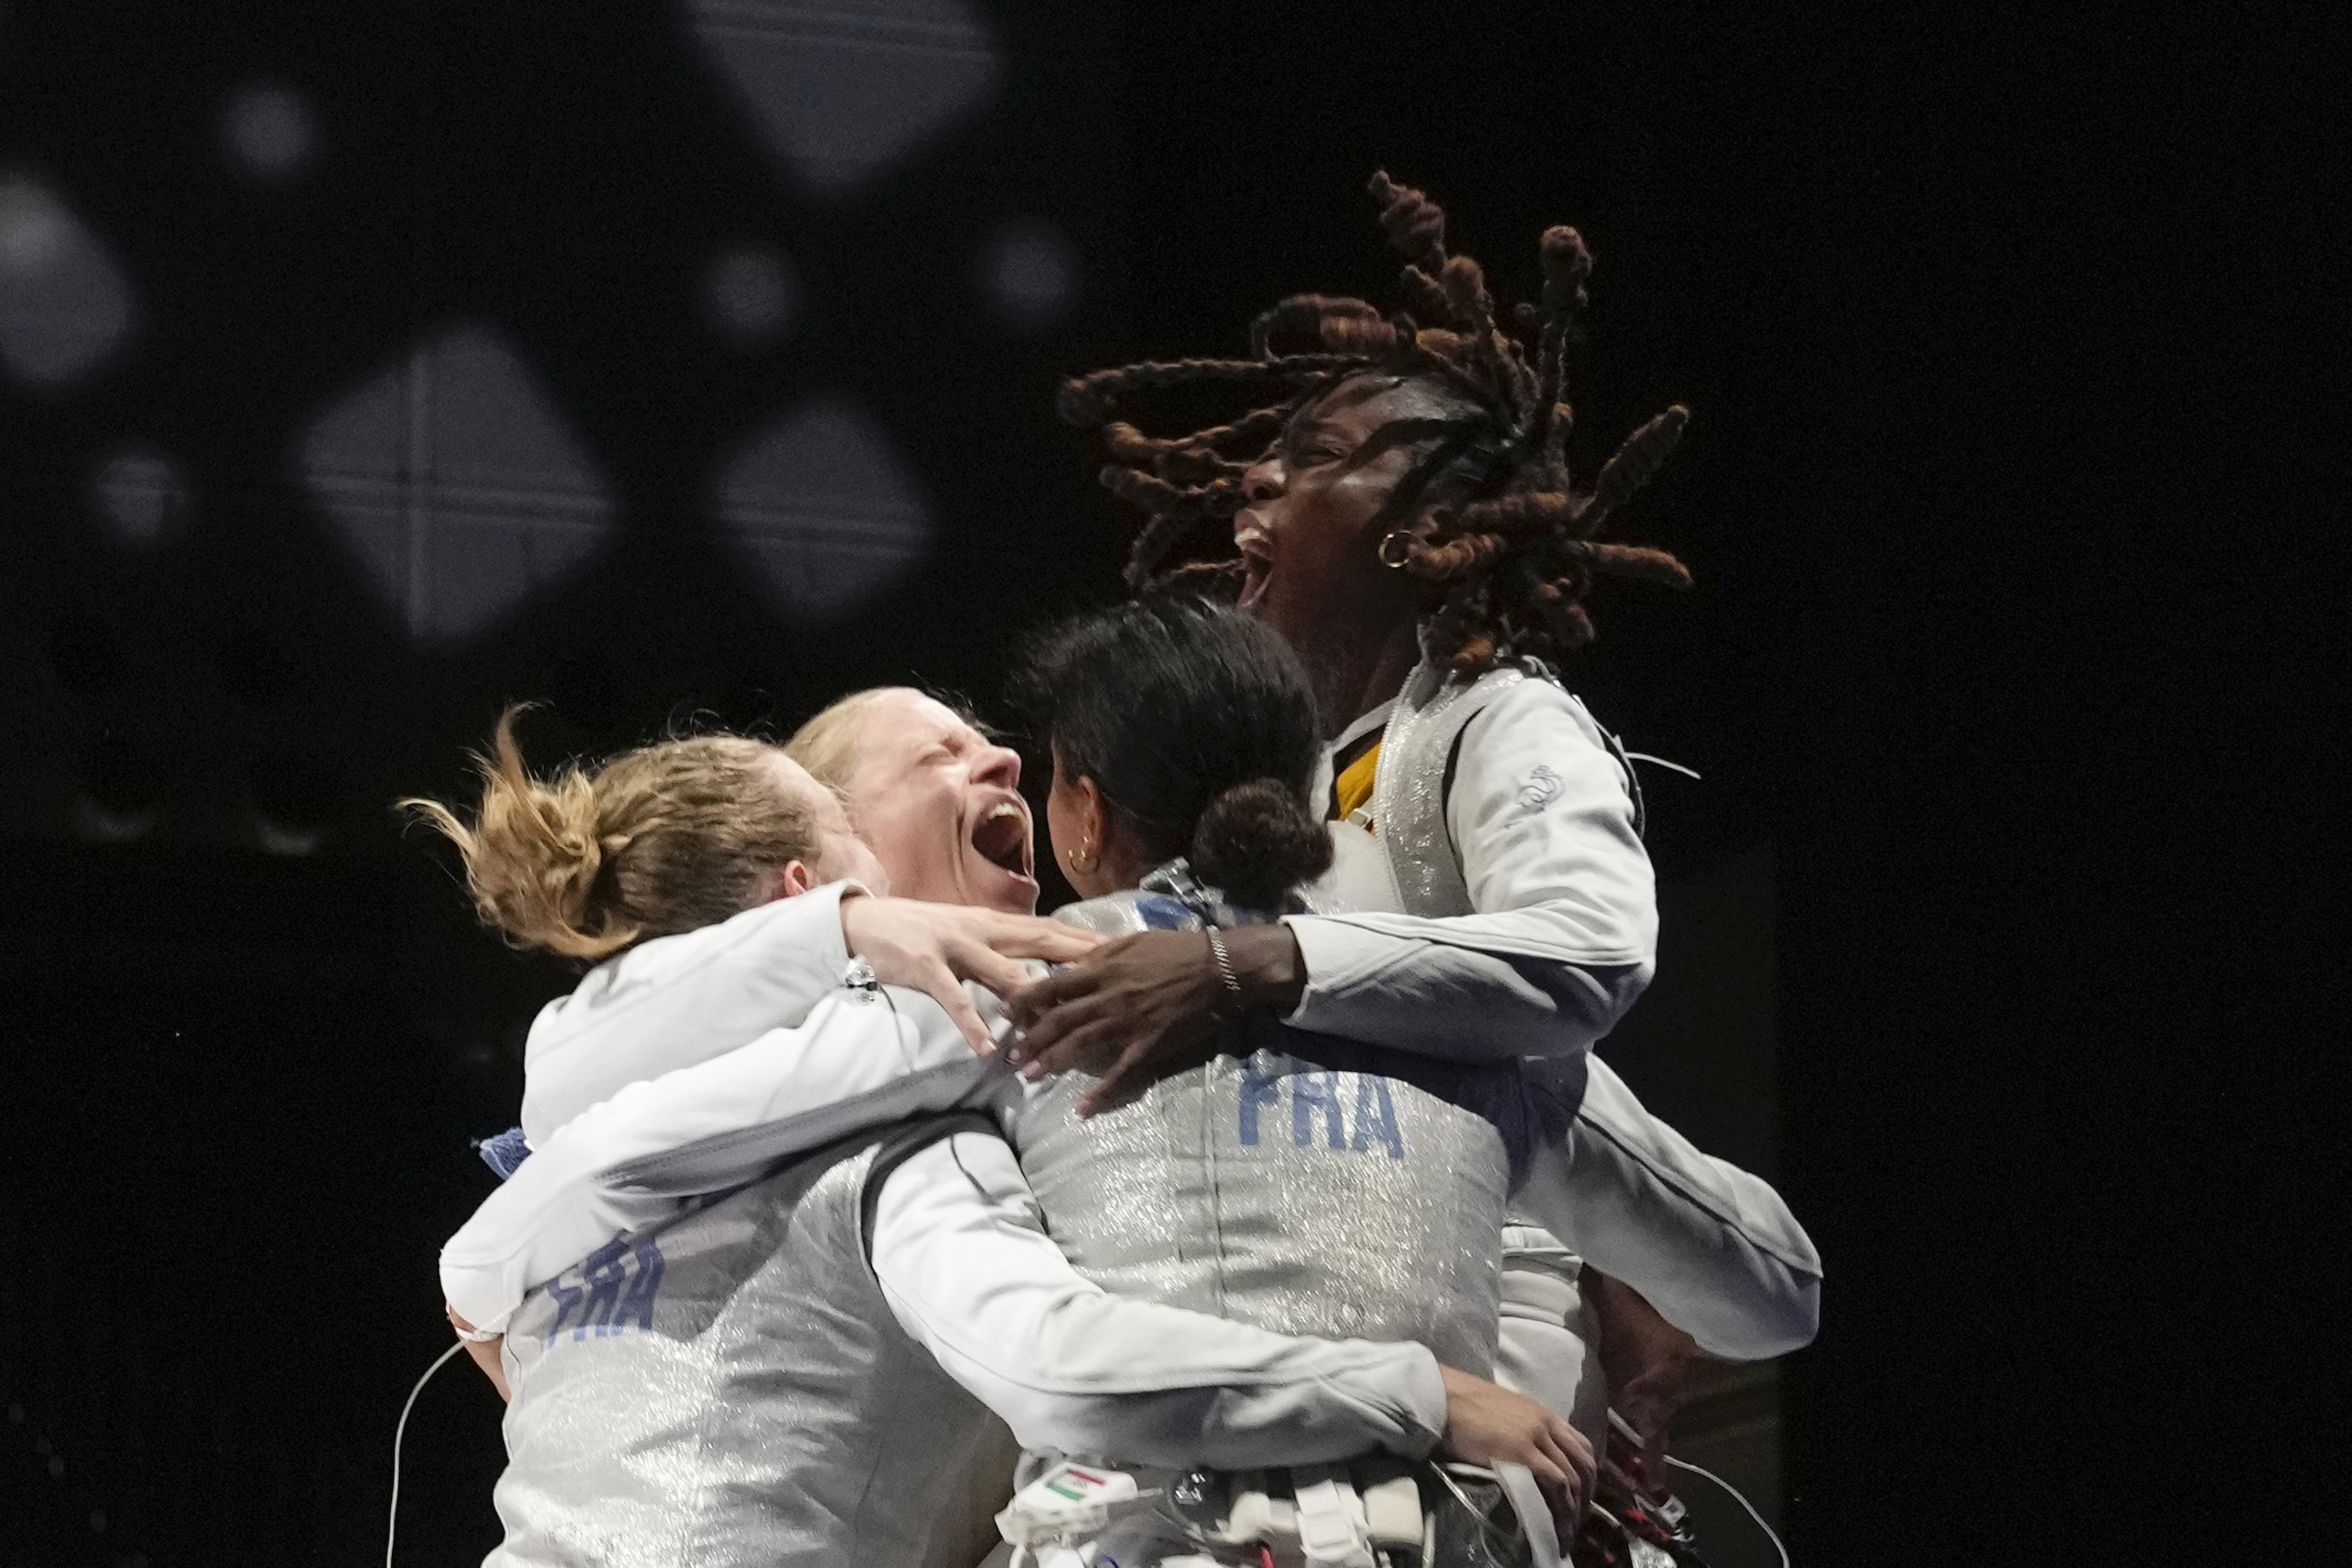 Female fencing athletes jump for joy after winning a match at the Olympics.